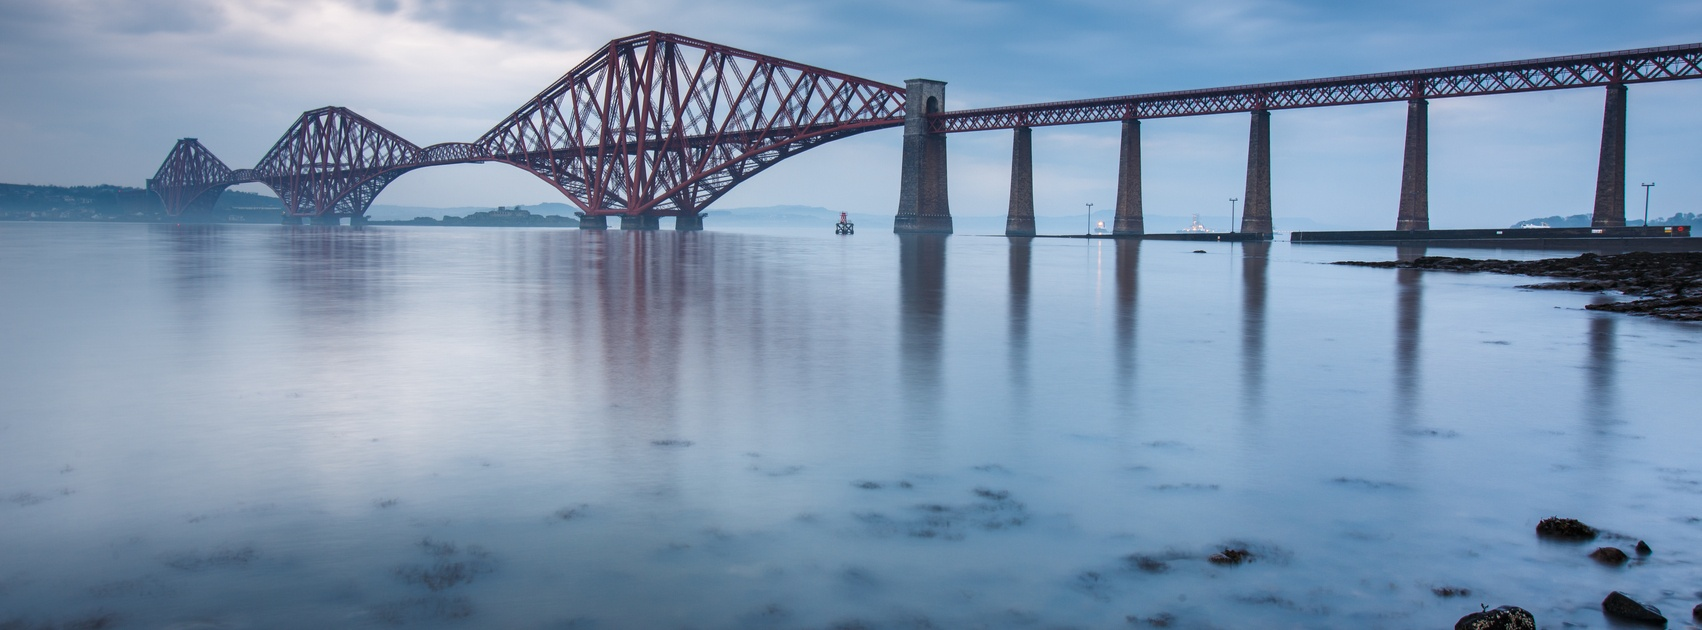 Forth_Rail_Bridge_1.jpg